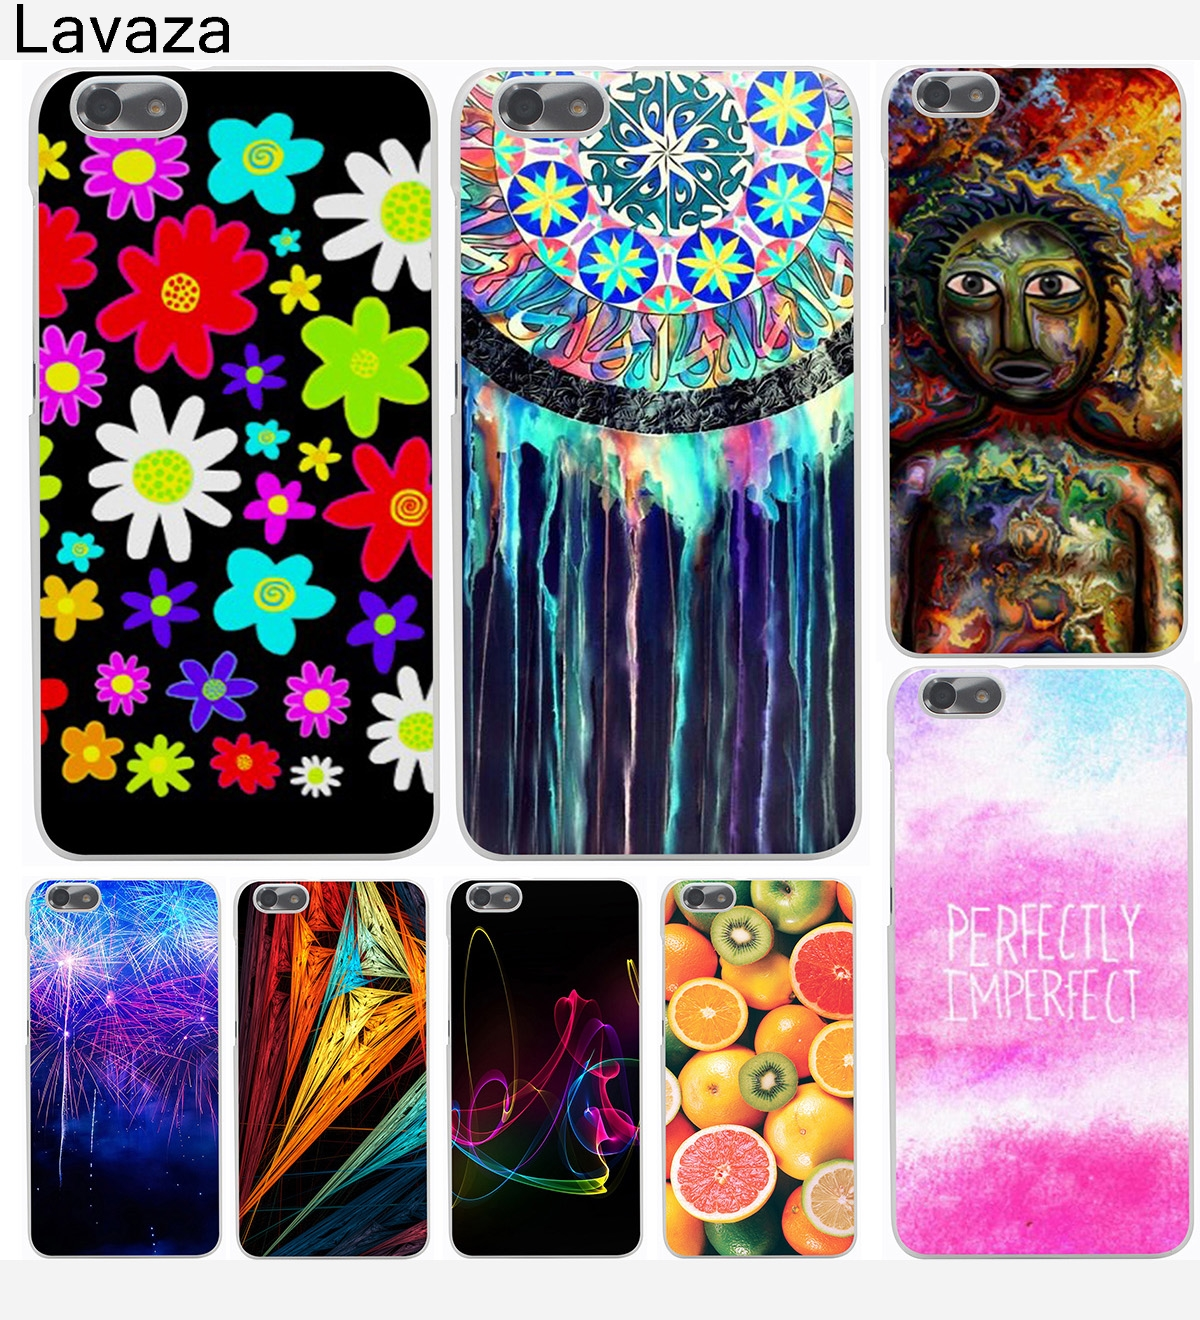 Dell Wiring Diagram P6 And P8 Content Resource Of Ptc Lavaza Colorful Dream Catchers Hard Case For Huawei P7 P9 Rh Sites Google Com Asrock